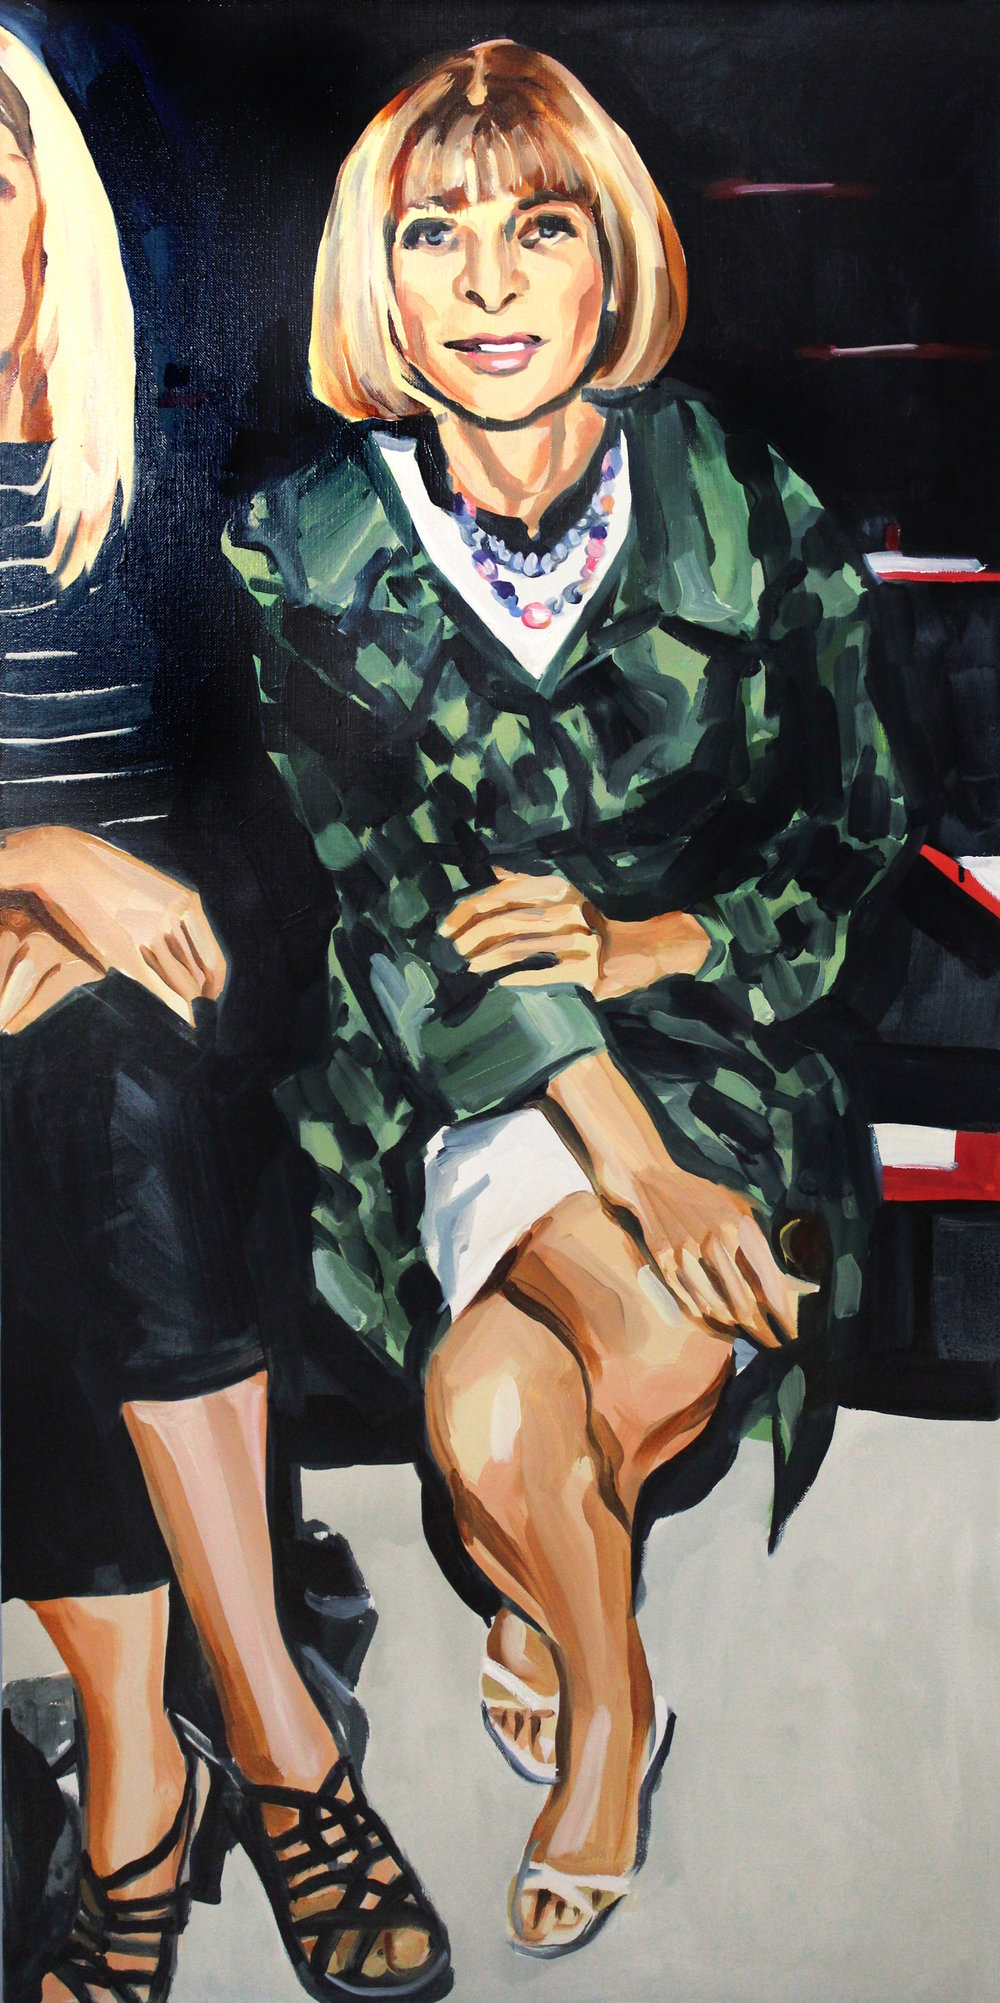 Laura Collins Anna Wintour Double Crossing Her Legs no. 6 oil on linen 24x48 2018 - Copy.JPG